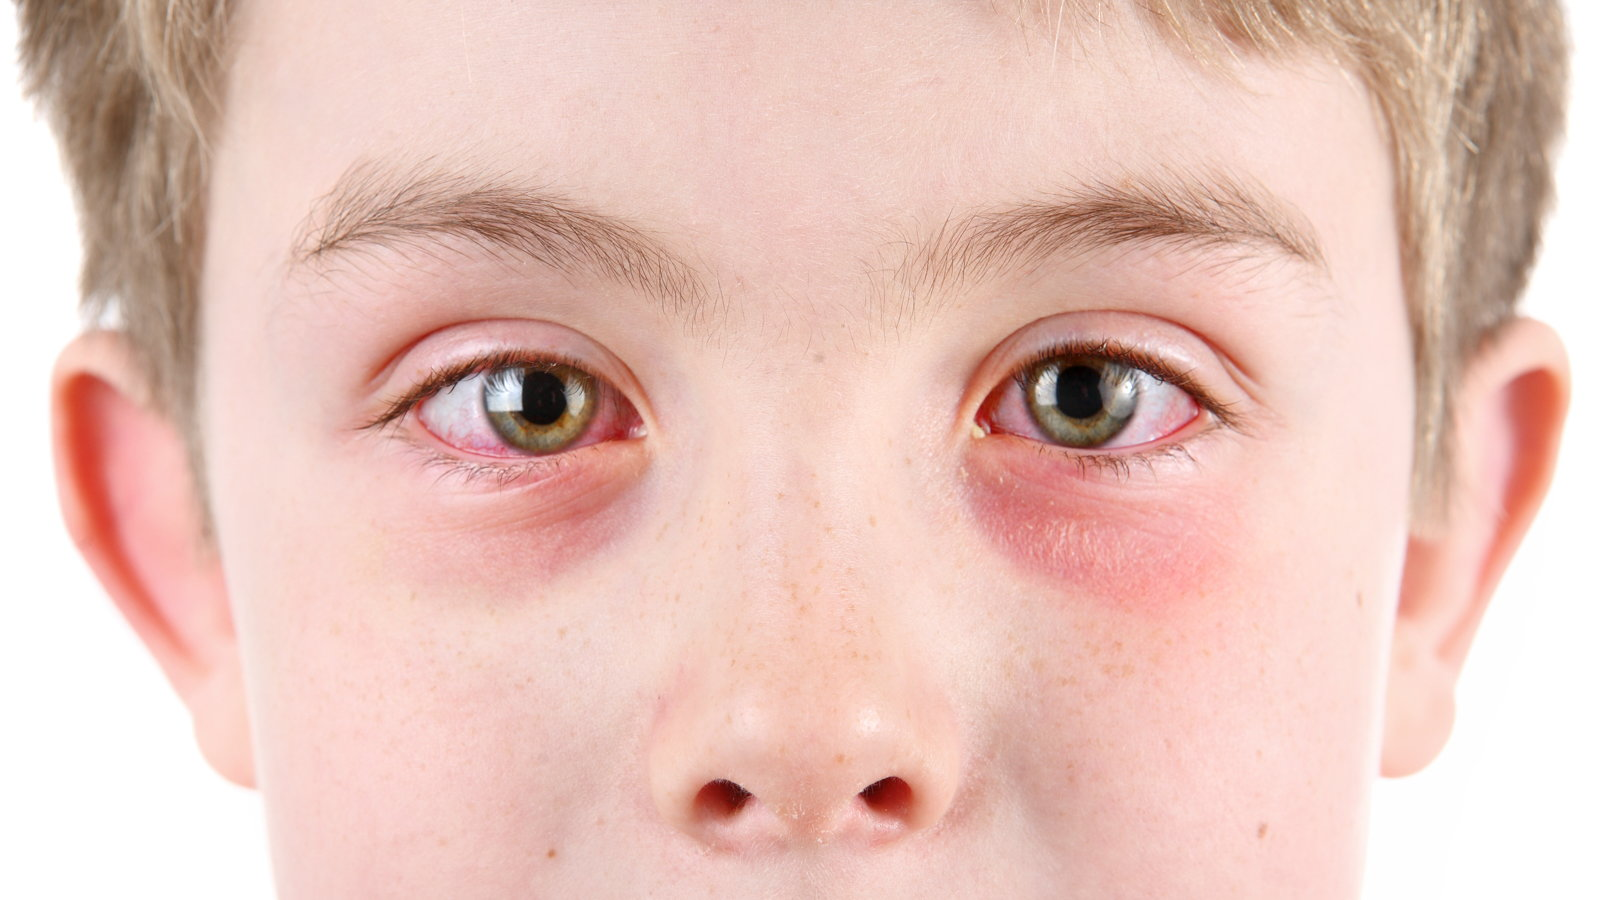 child with eye infection